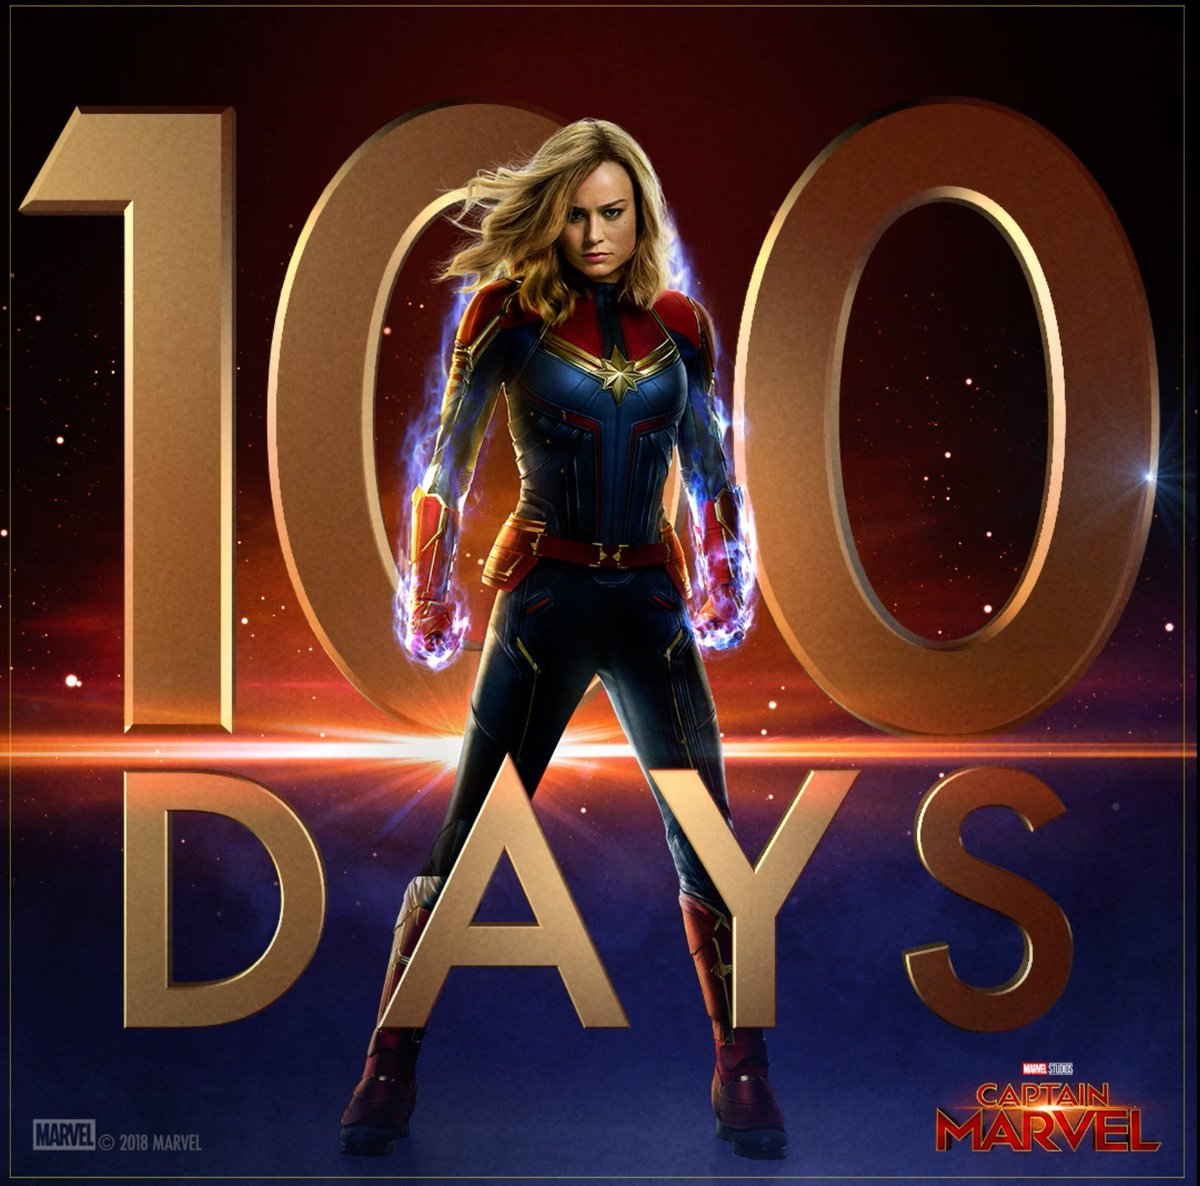 100 Days. Marvel Studios' #CaptainMarvel is in theaters March 8, 2019.